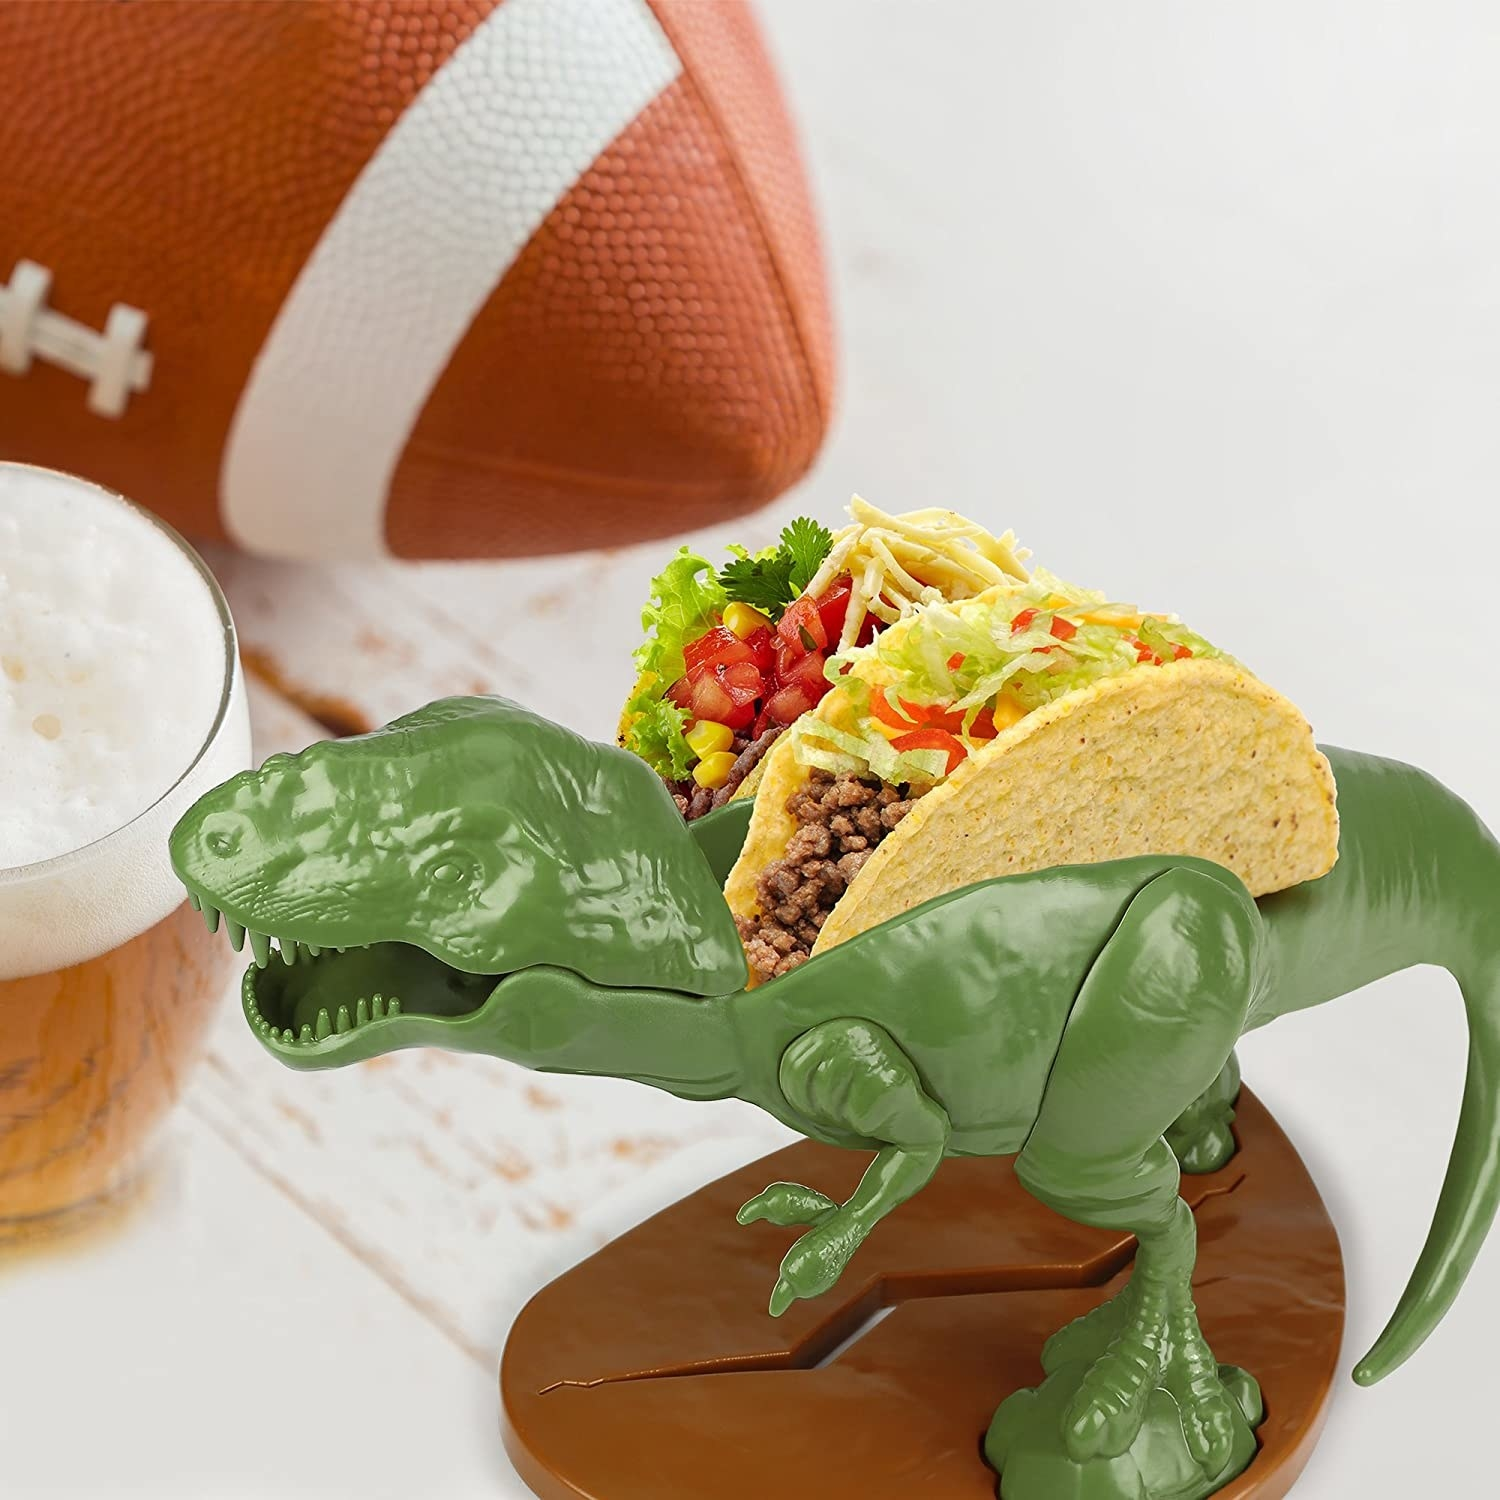 Two tacos placed on top of a T-Rex shaped toy